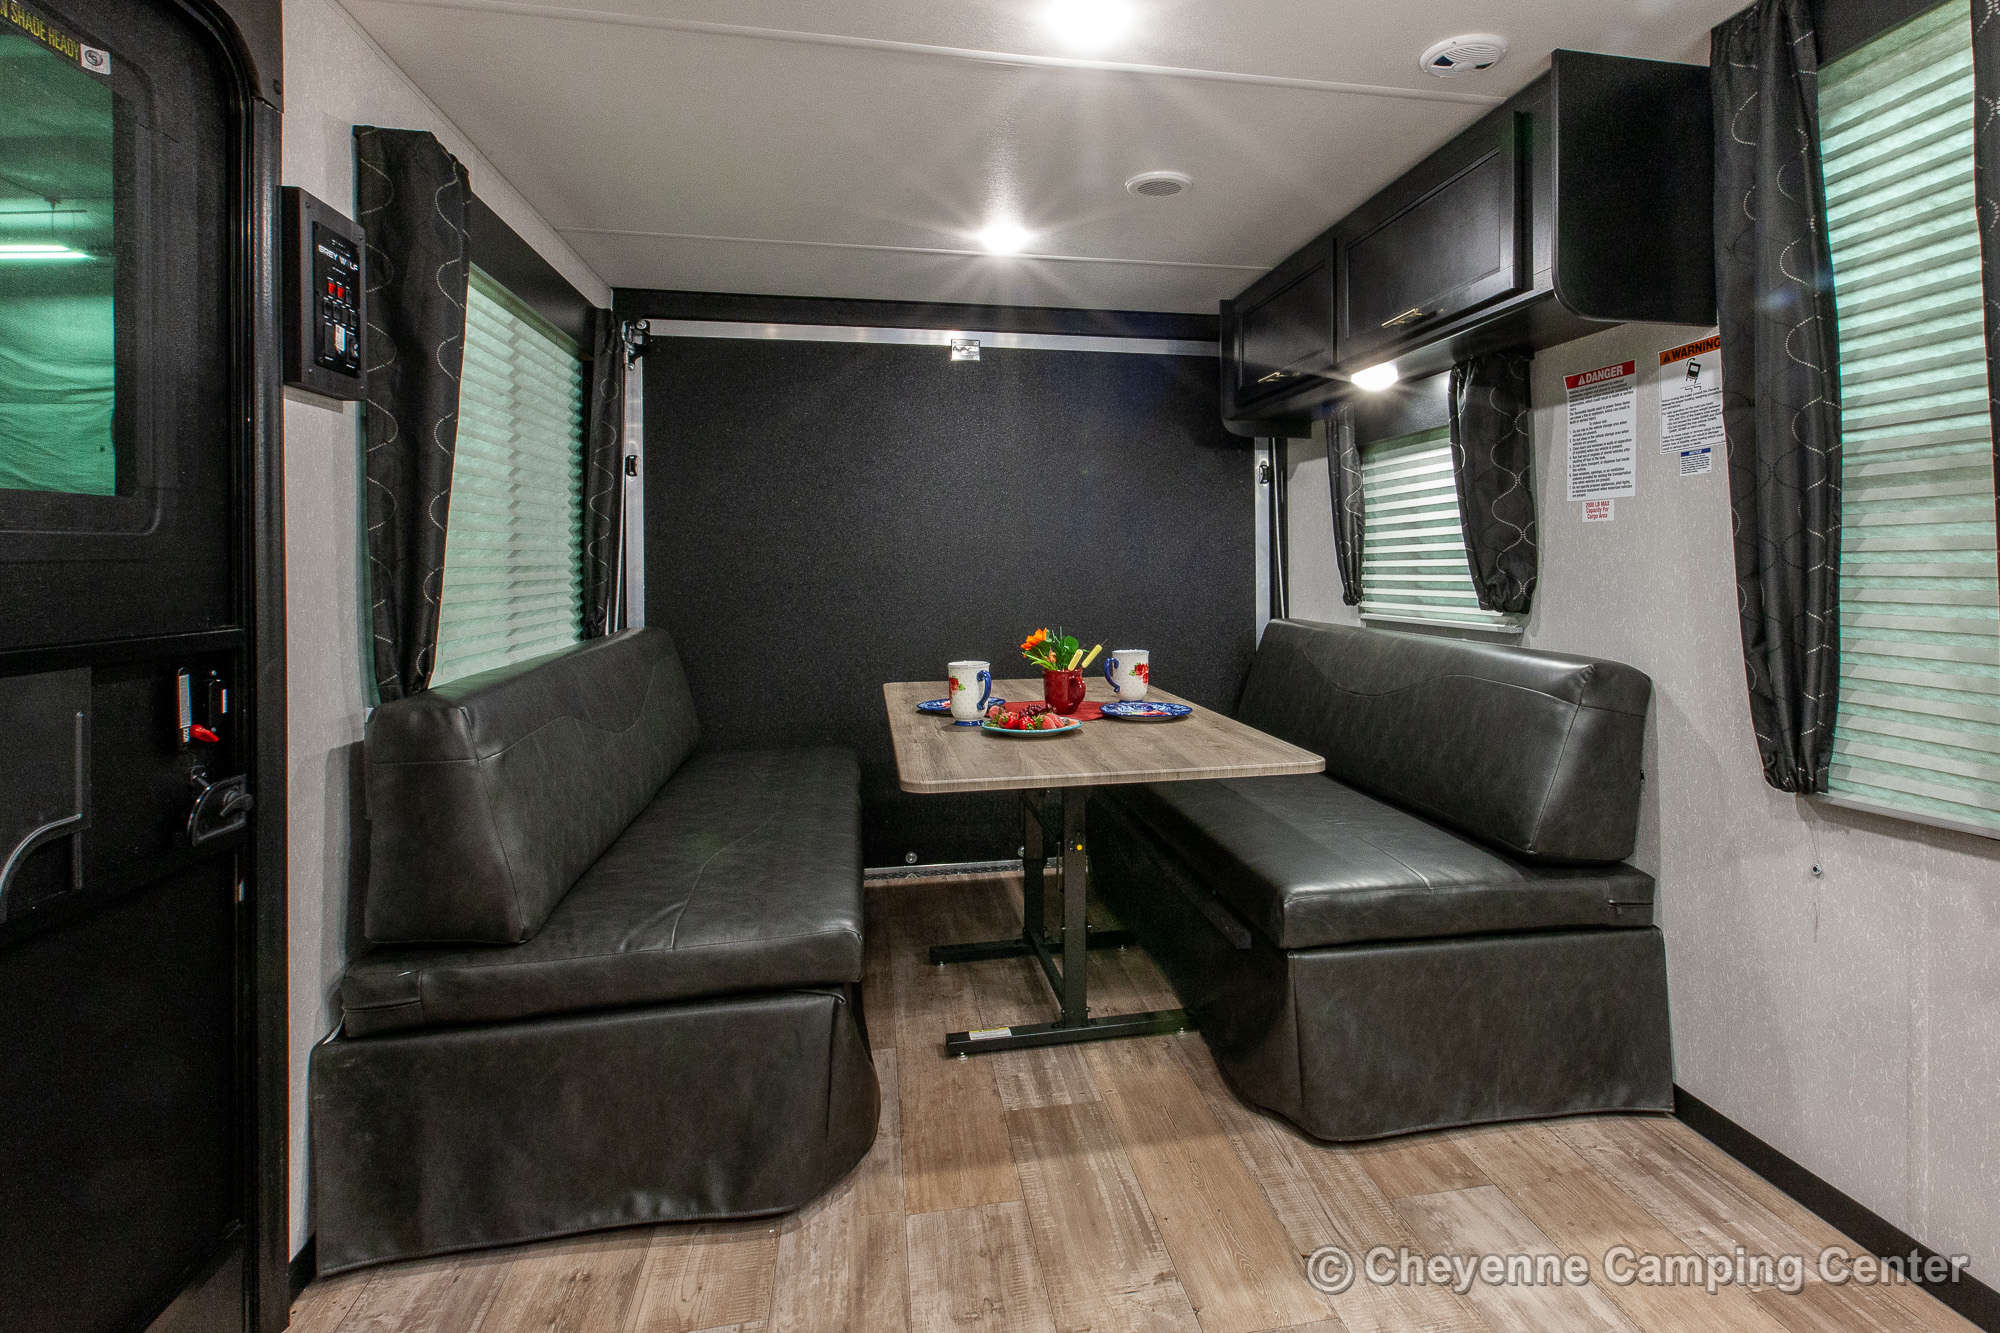 2022 Forest River Cherokee Grey Wolf 26MBRR Toy Hauler Travel Trailer Interior Image